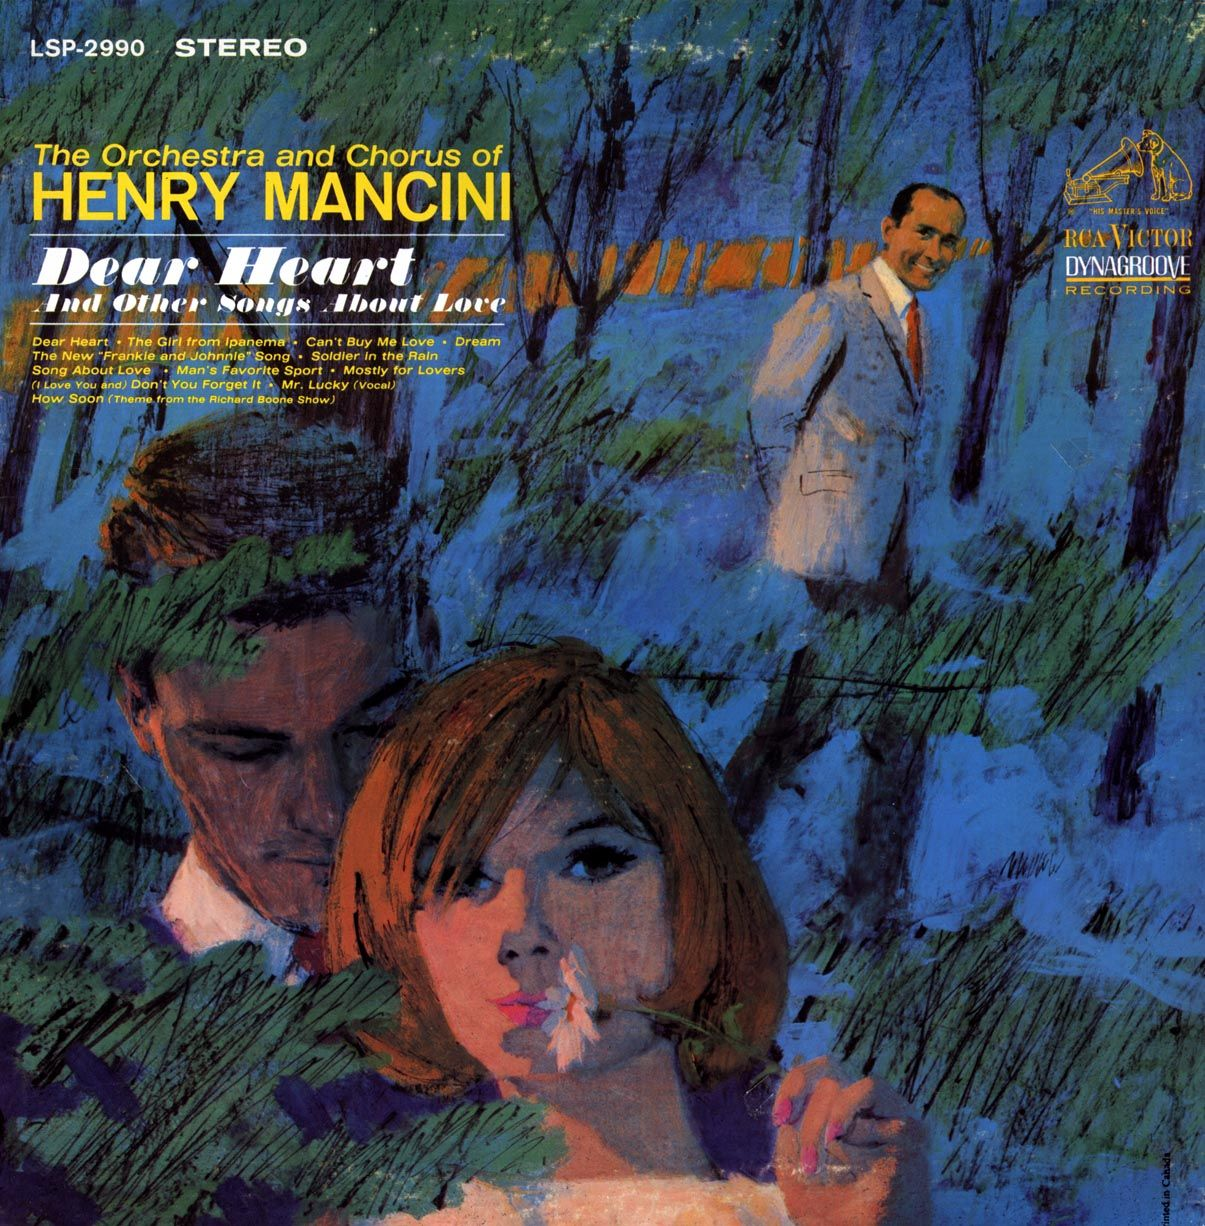 Henri Mancini's LP cover by Mike Ludlow (1921-2010)